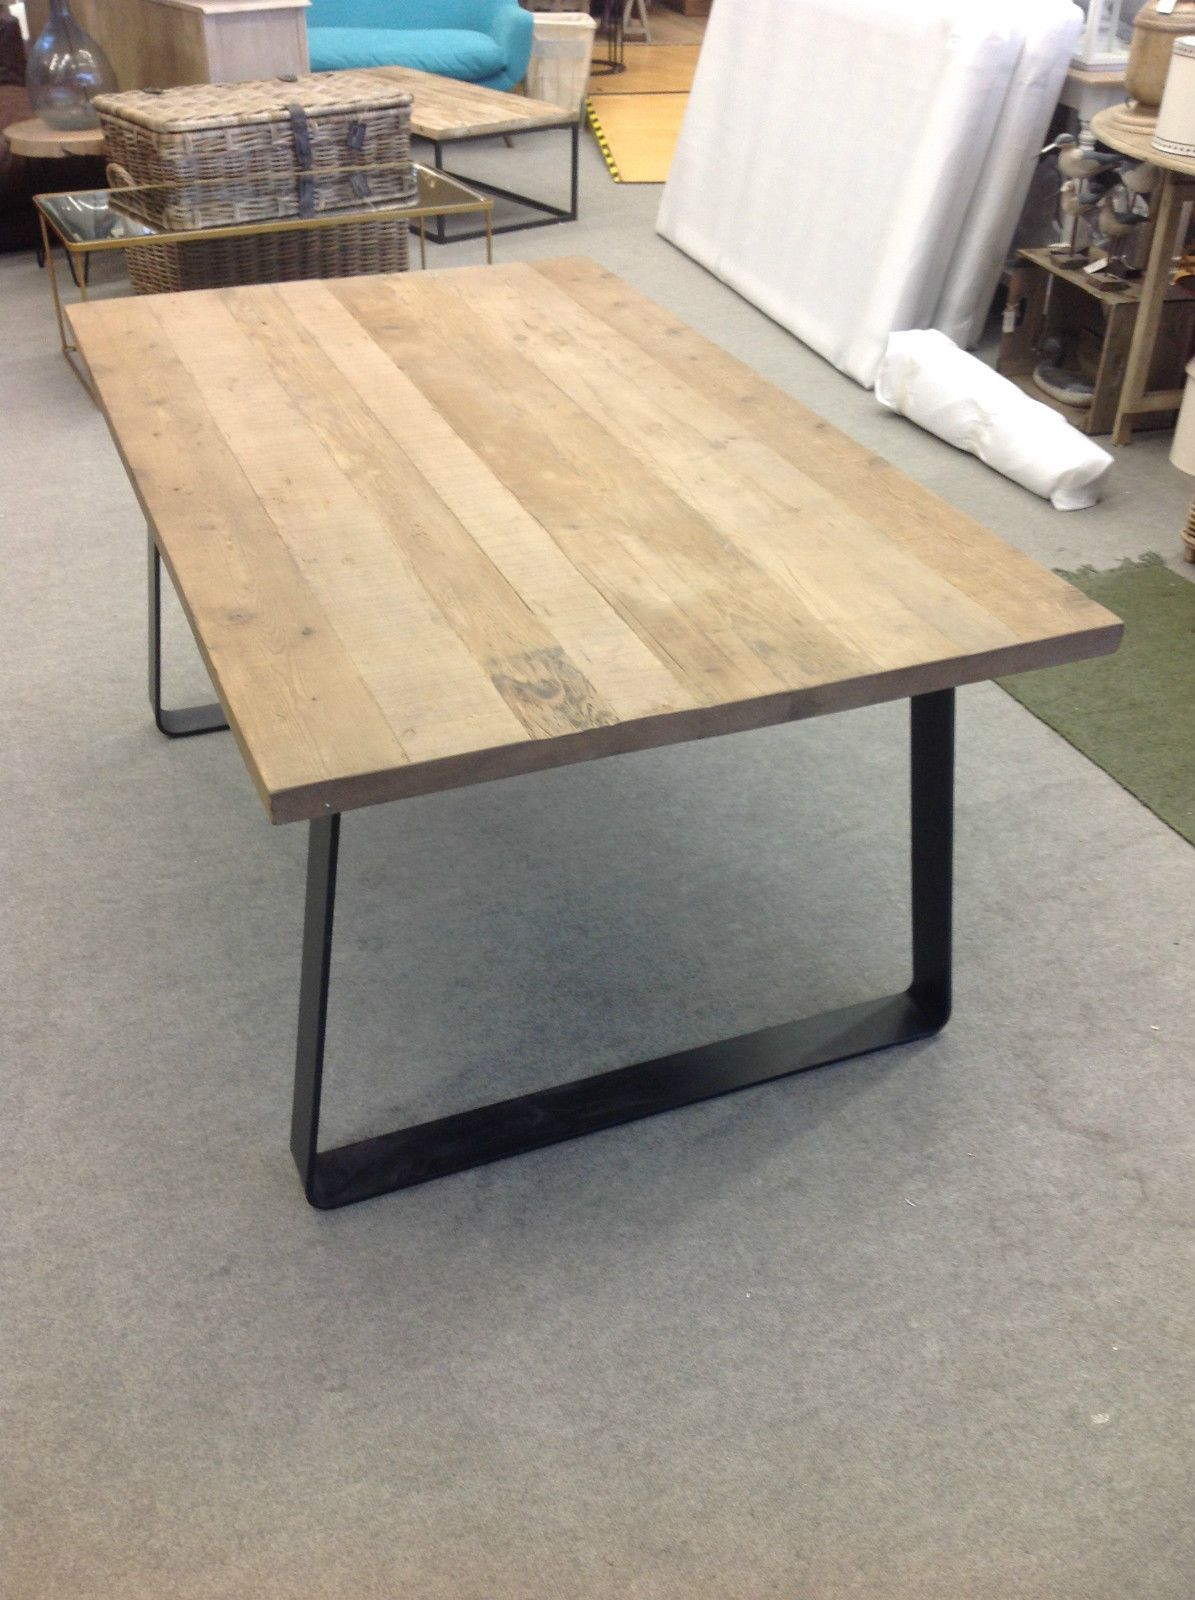 Reclaimed Oak Dining Table Designer Brand Industrial Style Reclaimed Timber Top Dining Table